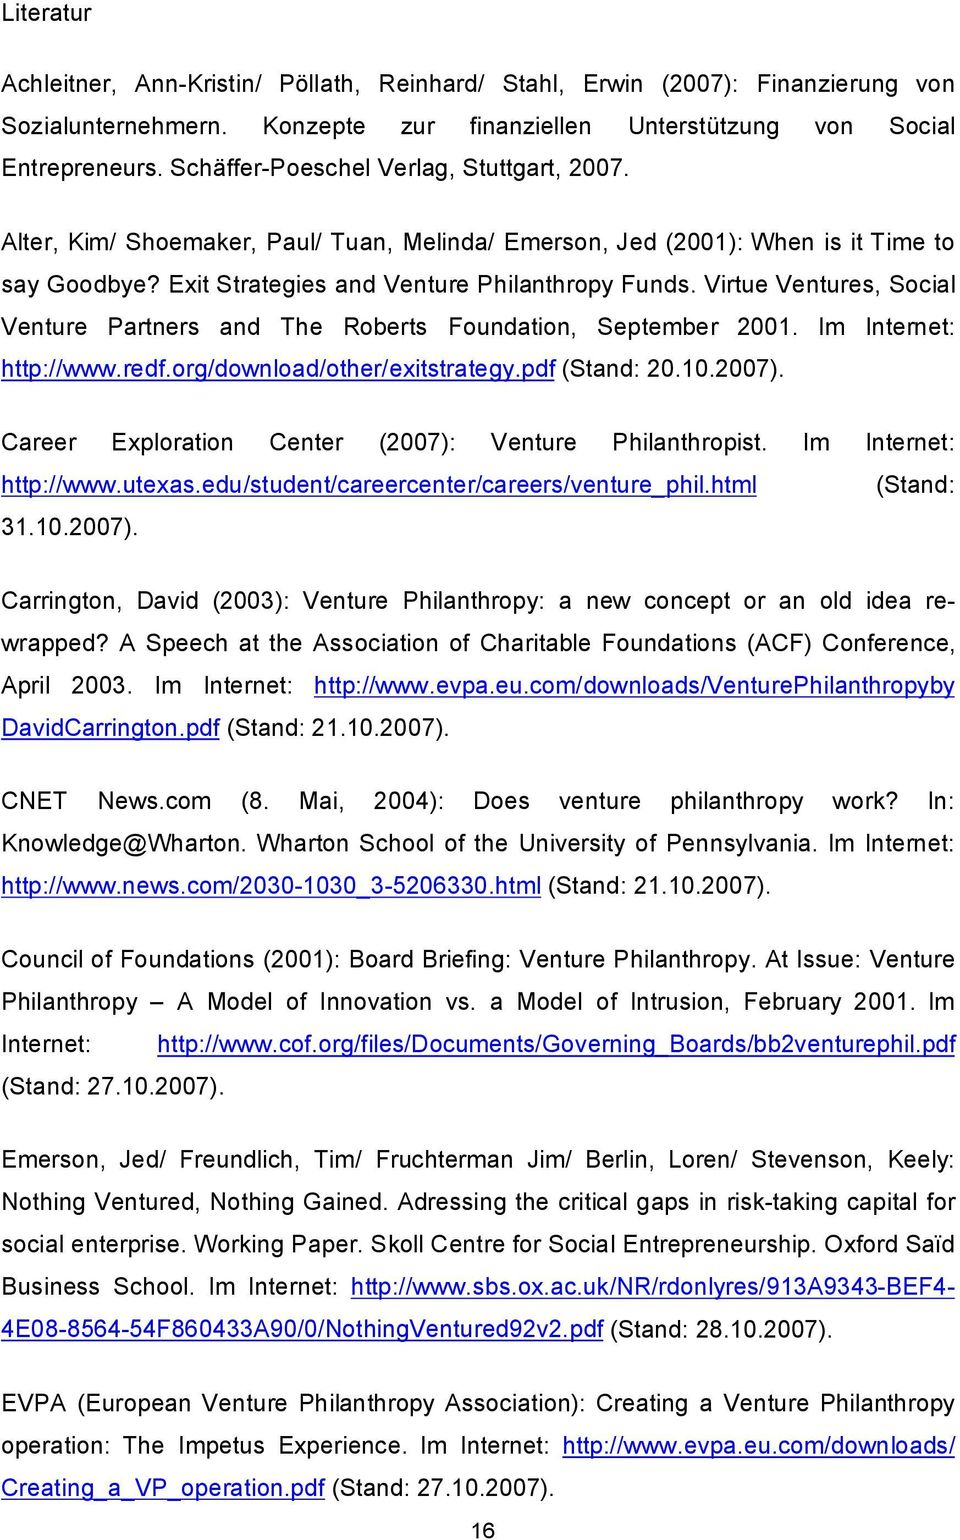 Virtue Ventures, Social Venture Partners and The Roberts Foundation, September 2001. Im Internet: http://www.redf.org/download/other/exitstrategy.pdf (Stand: 20.10.2007).